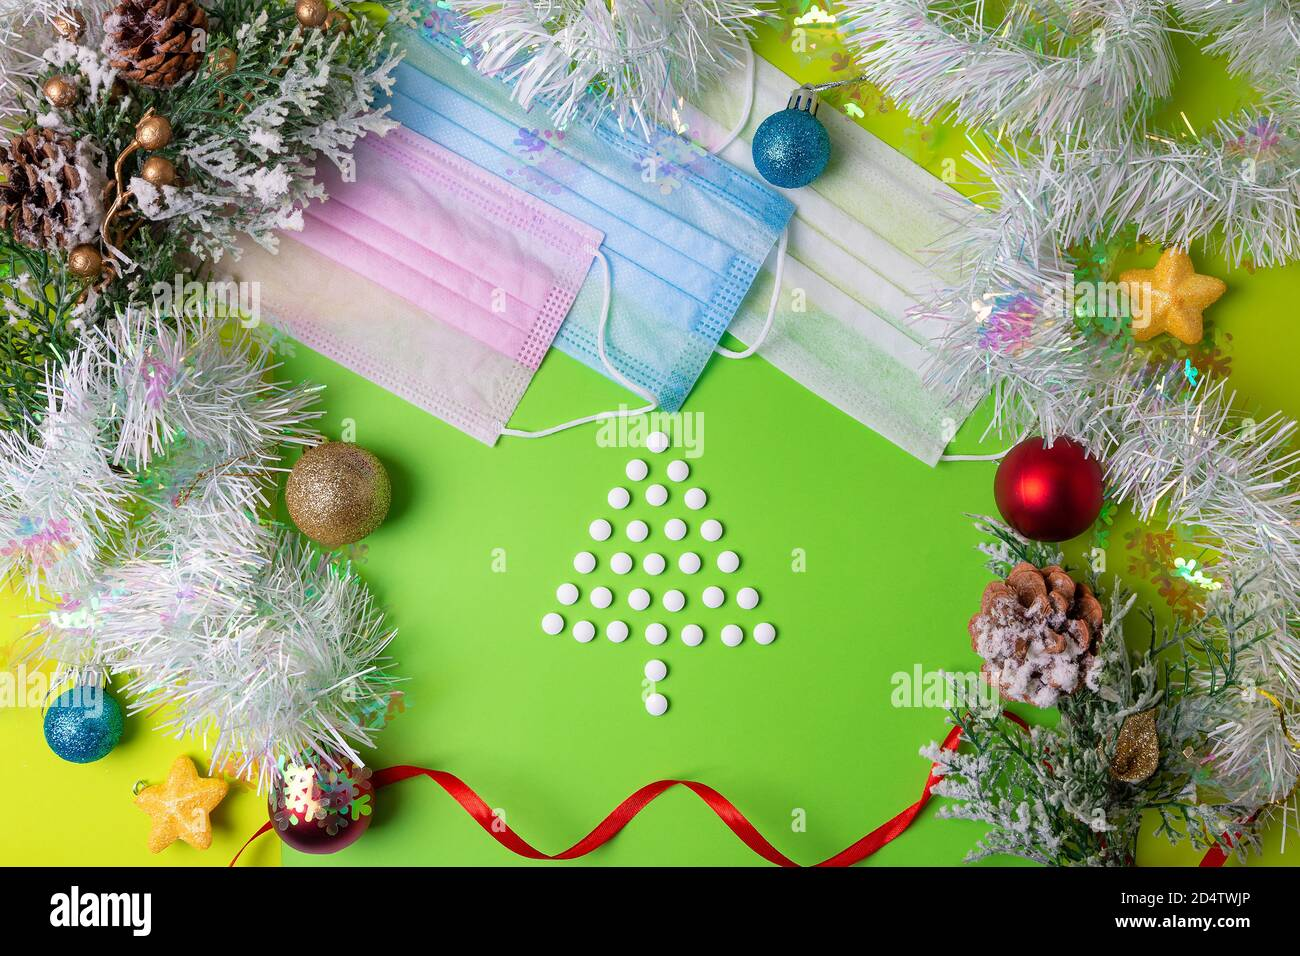 Christmas 2021 Tablets Tablets In The Form Of A Christmas Tree Pink Blue And White Medical Masks On A Green Background New Year And Christmas 2021 New Year Concept Durin Stock Photo Alamy